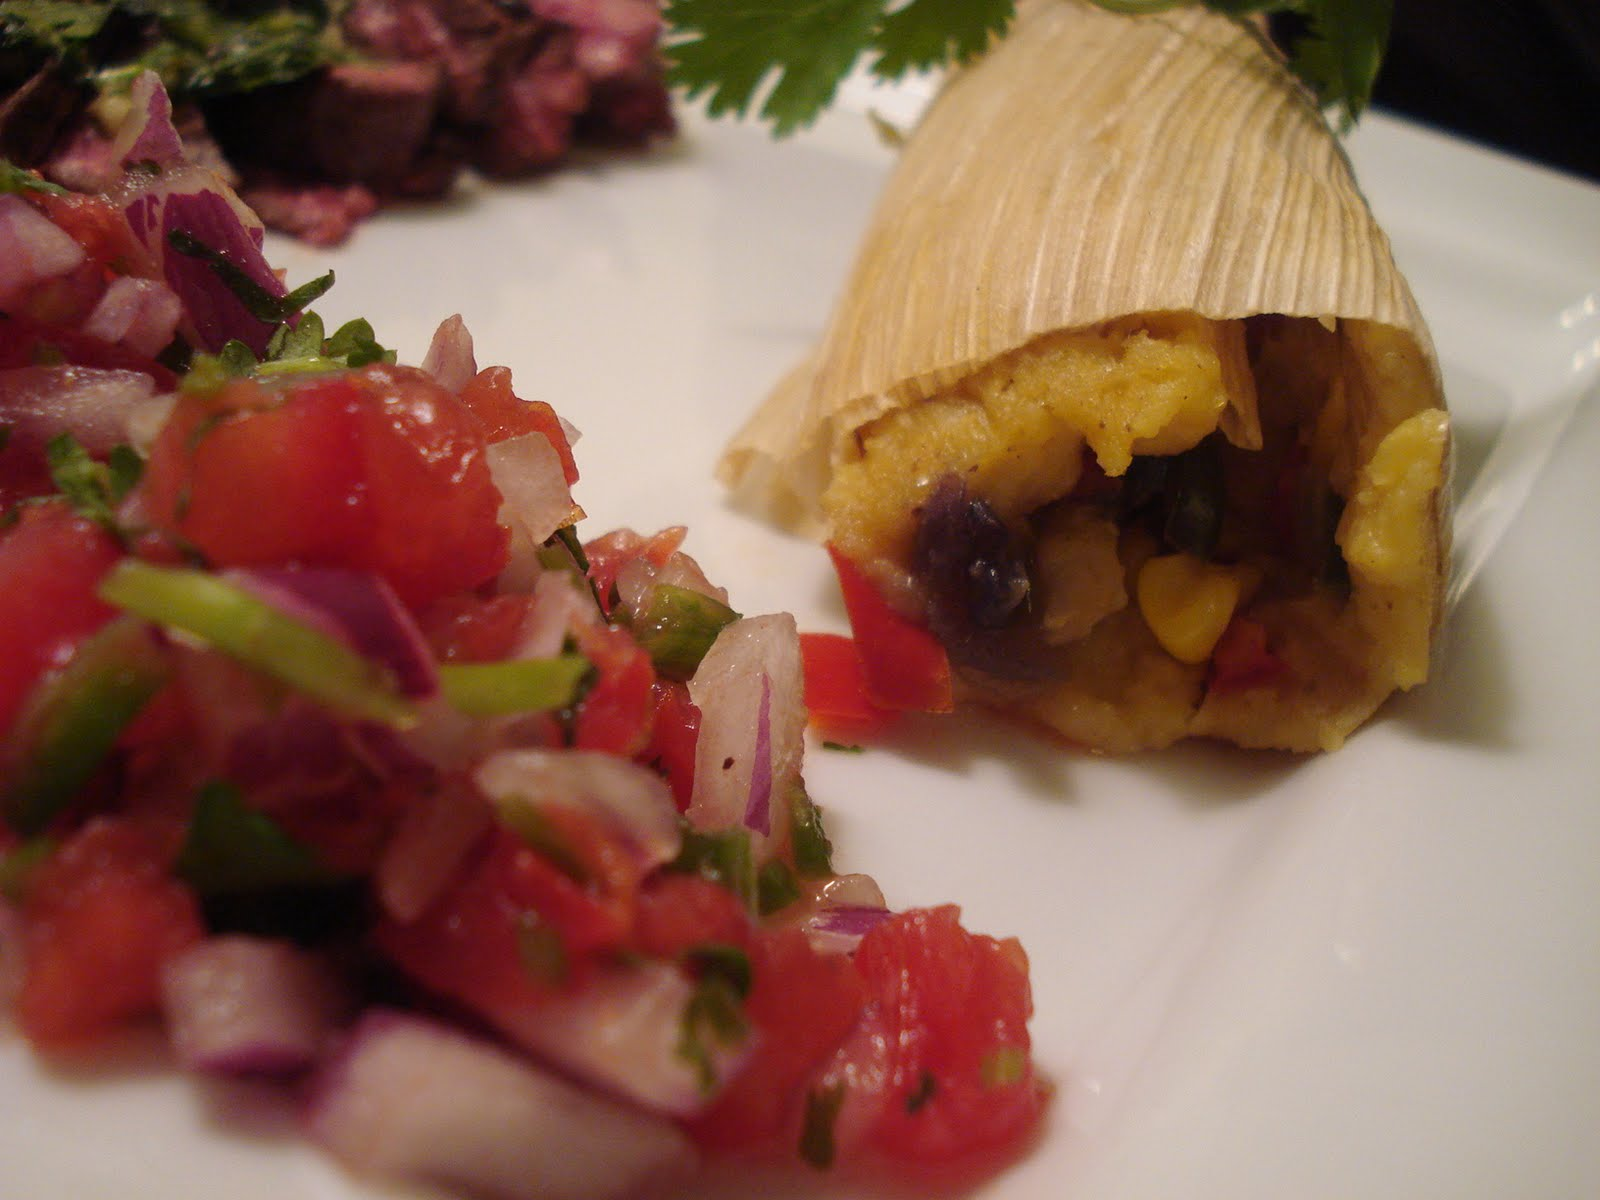 ... Skirt Steak with Roasted Vegetable Tamales and Pico de Gallo